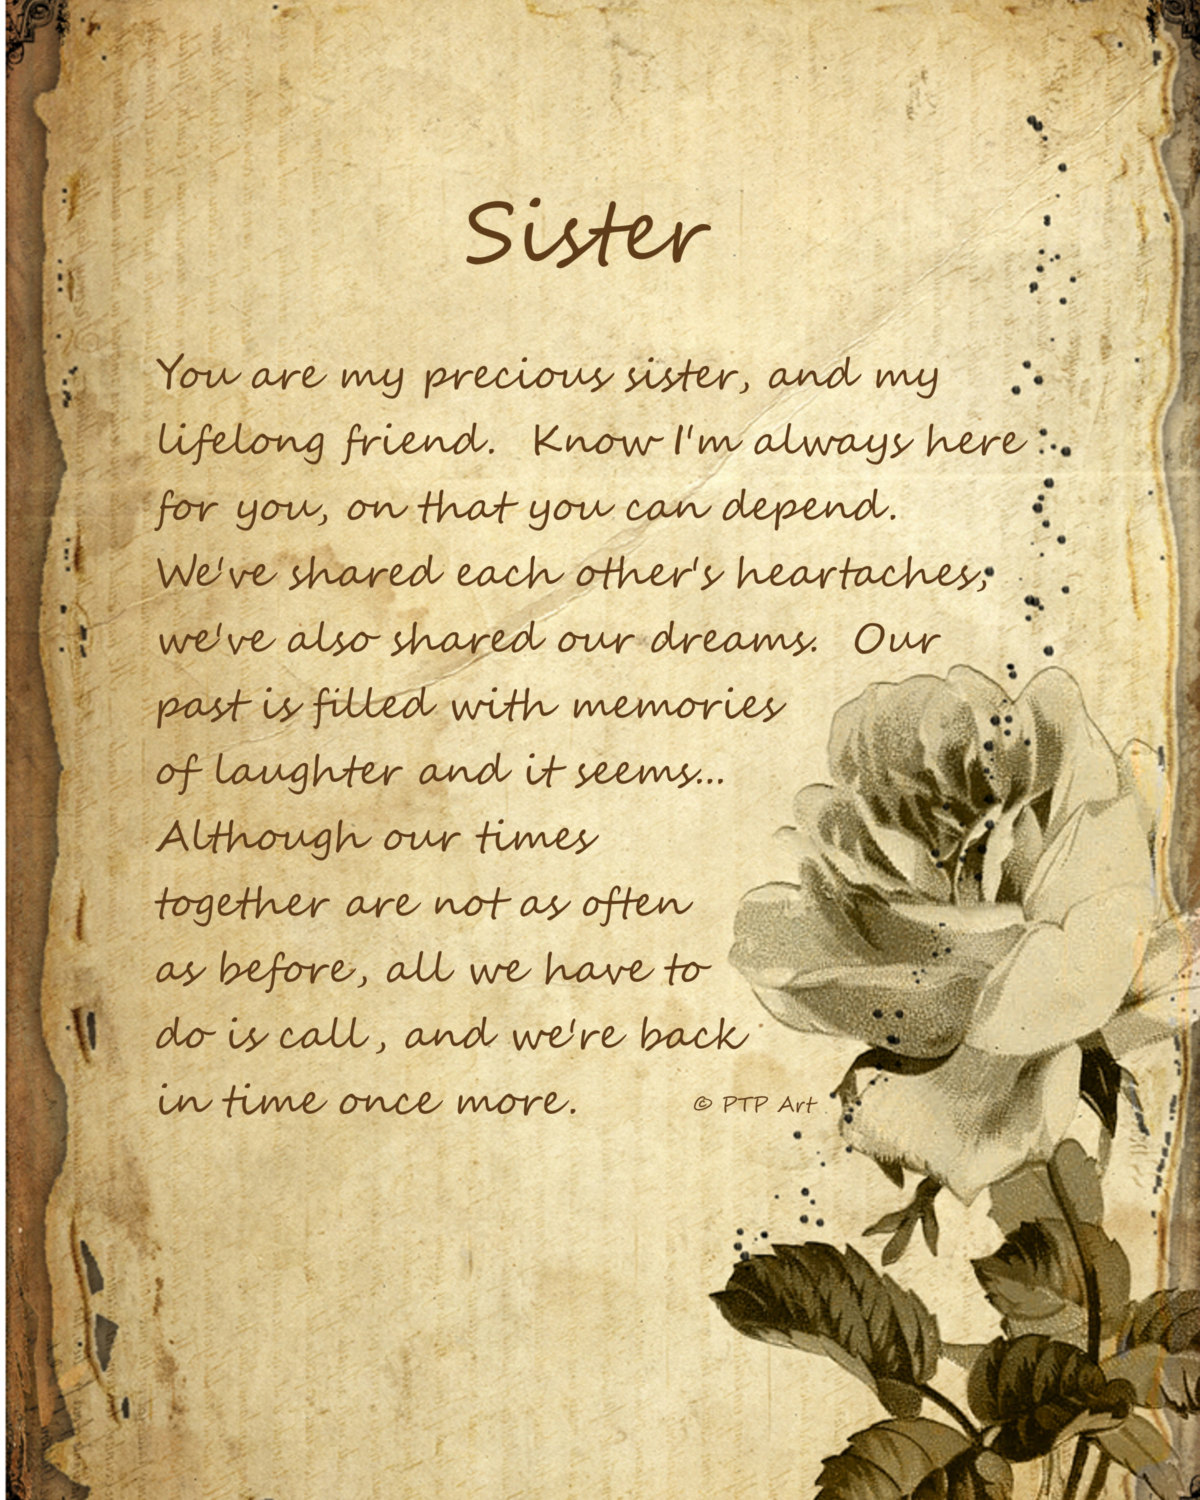 My Sister Marriage Quotes: Little Sister Quotes For Marriage. QuotesGram